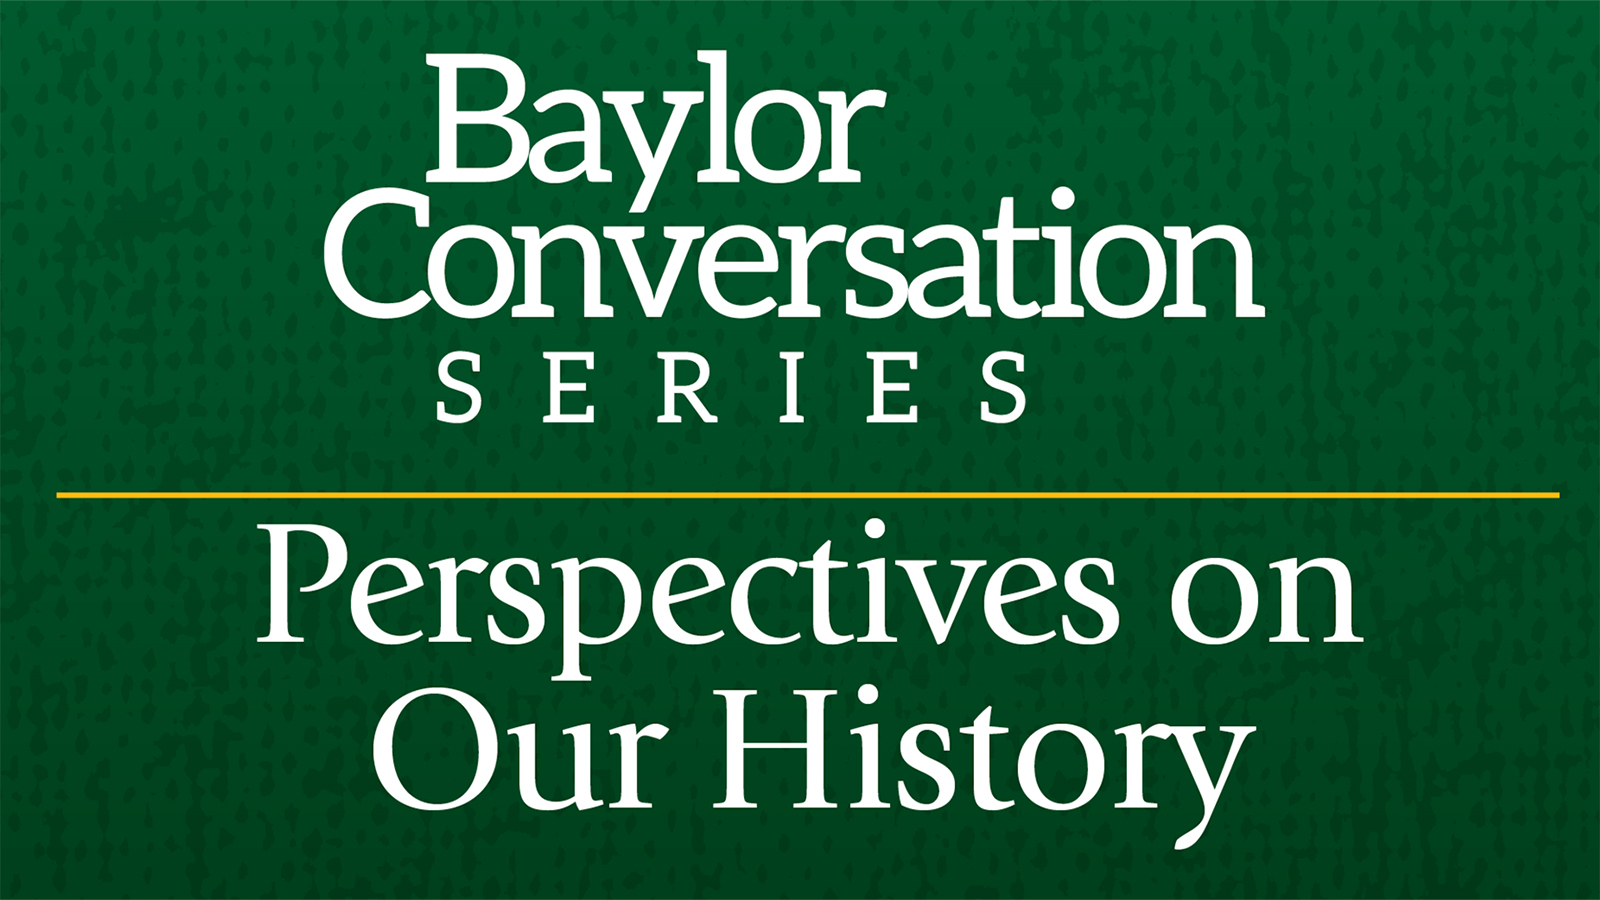 Baylor Conversation Series: Perspectives on Our History